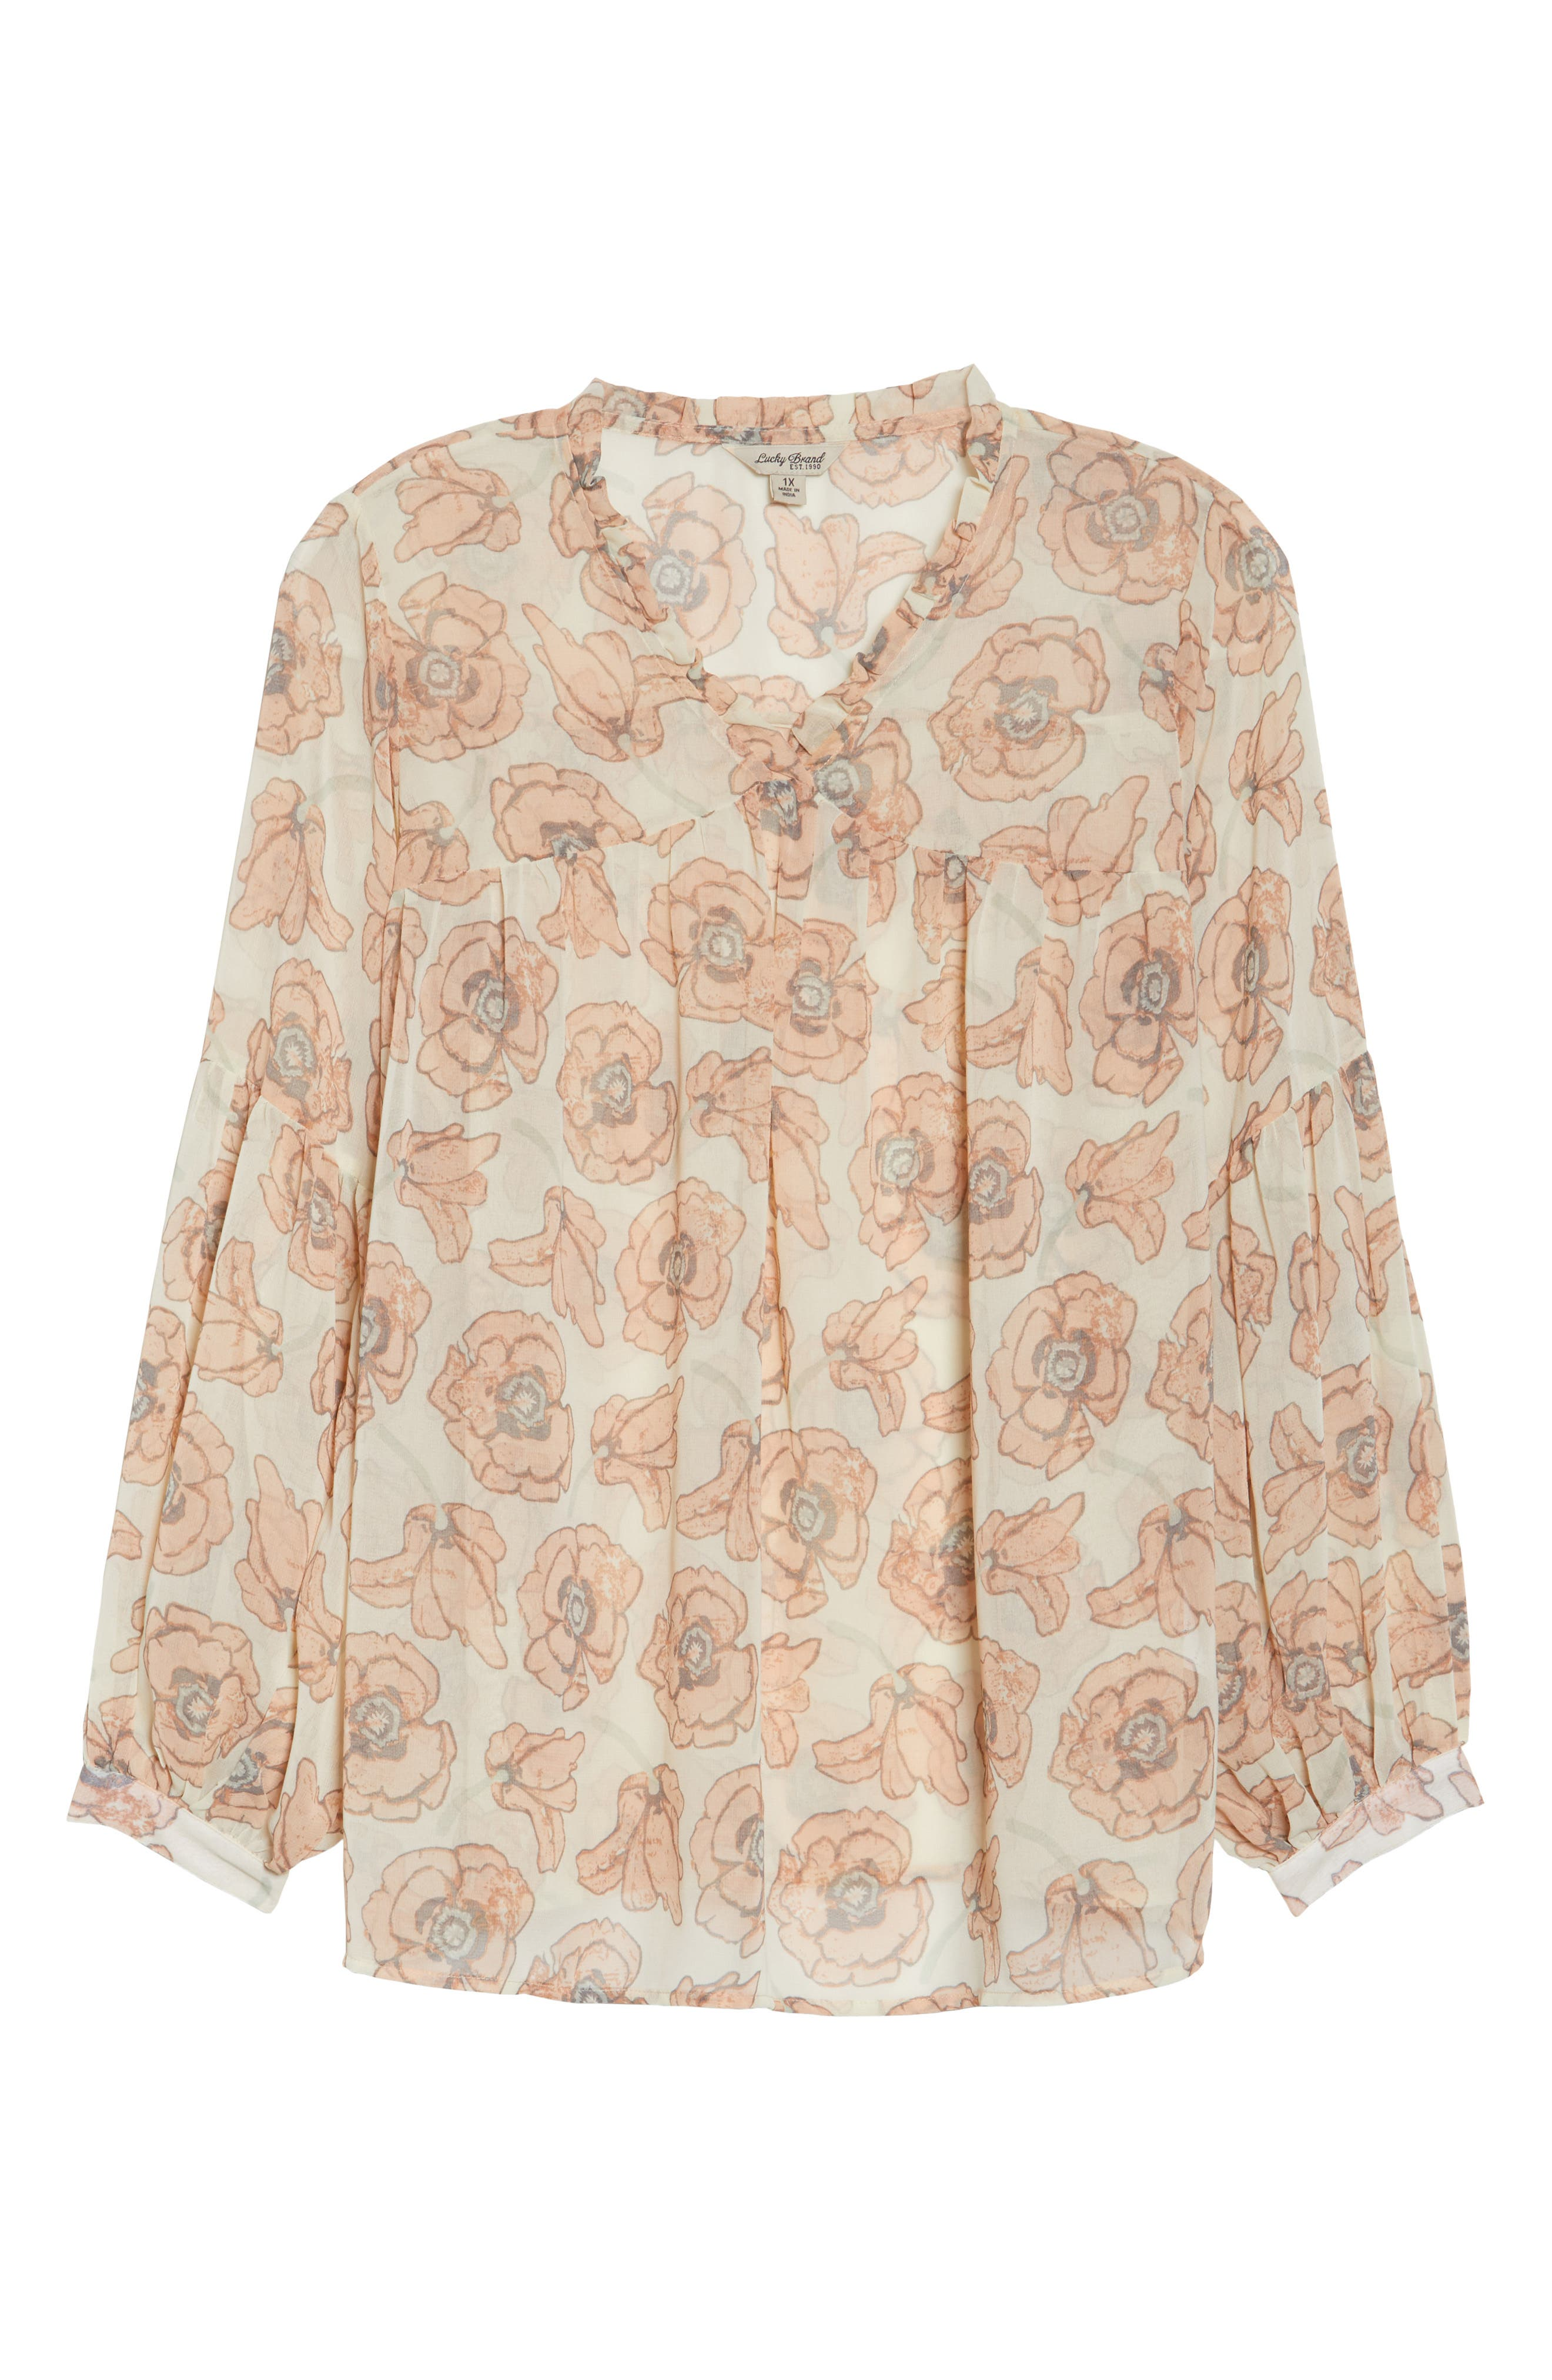 Exploded Floral Top,                             Alternate thumbnail 6, color,                             Pink Multi